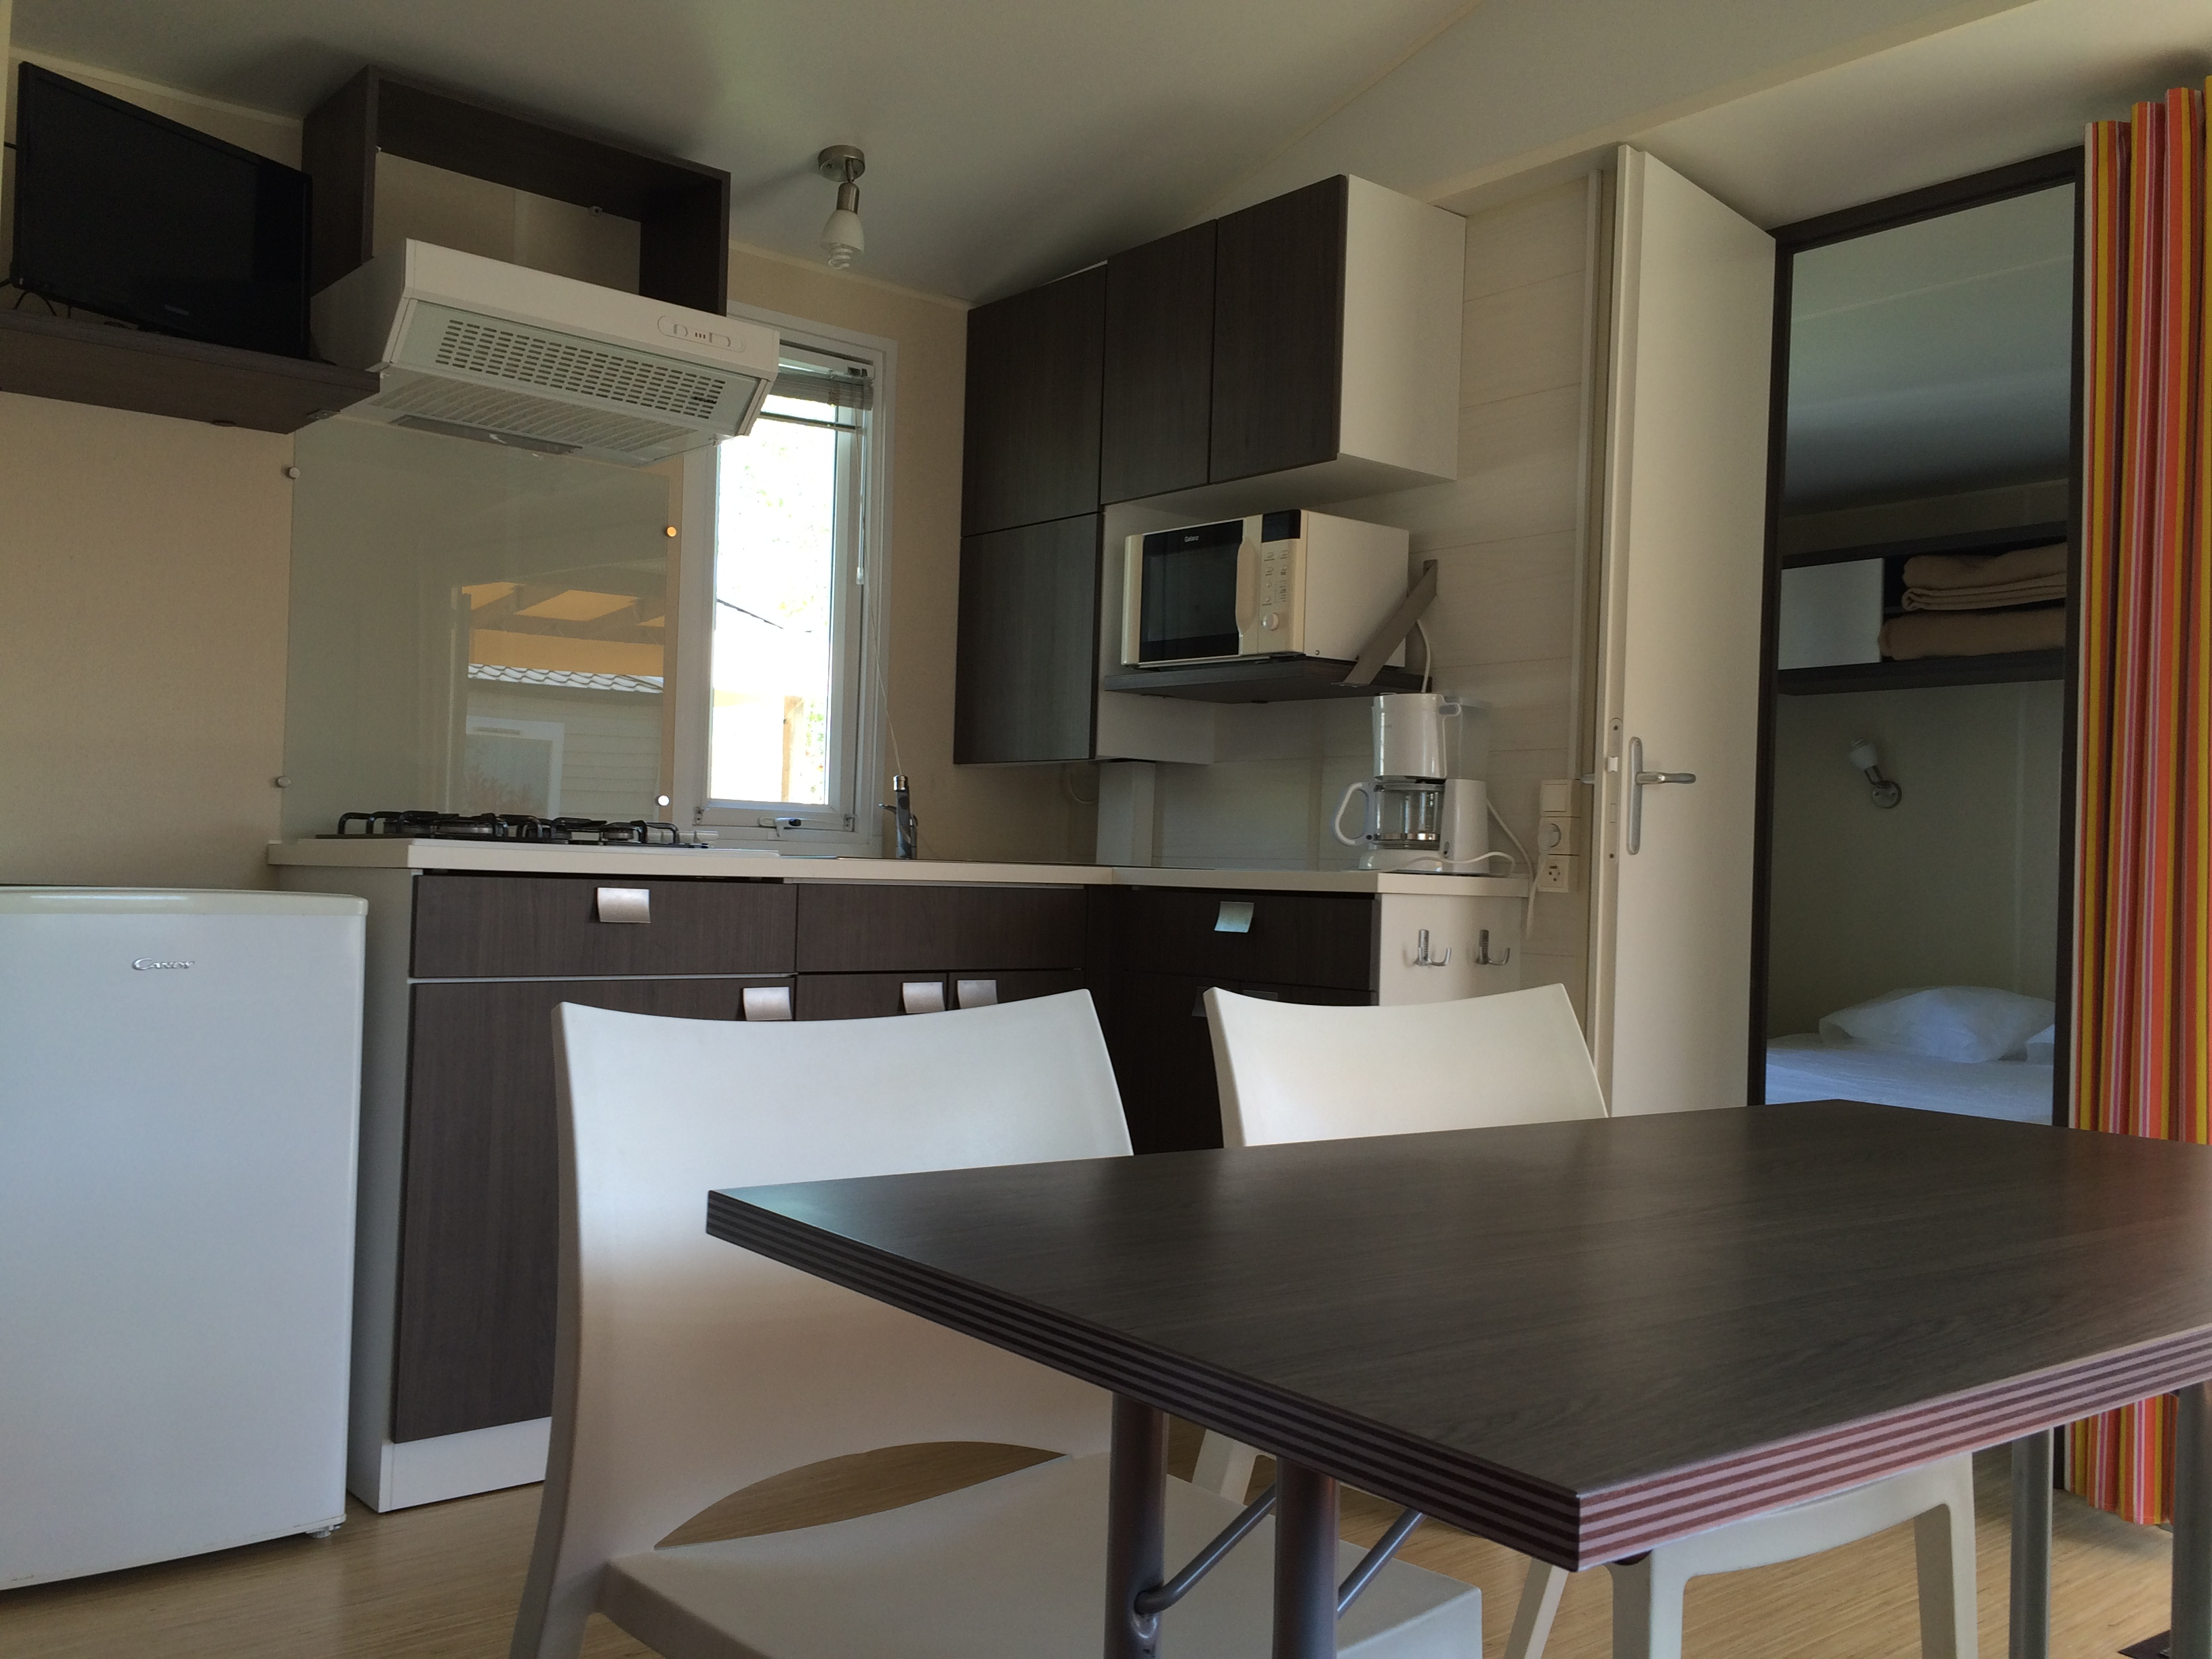 Cuisine mobil home 2 chambres